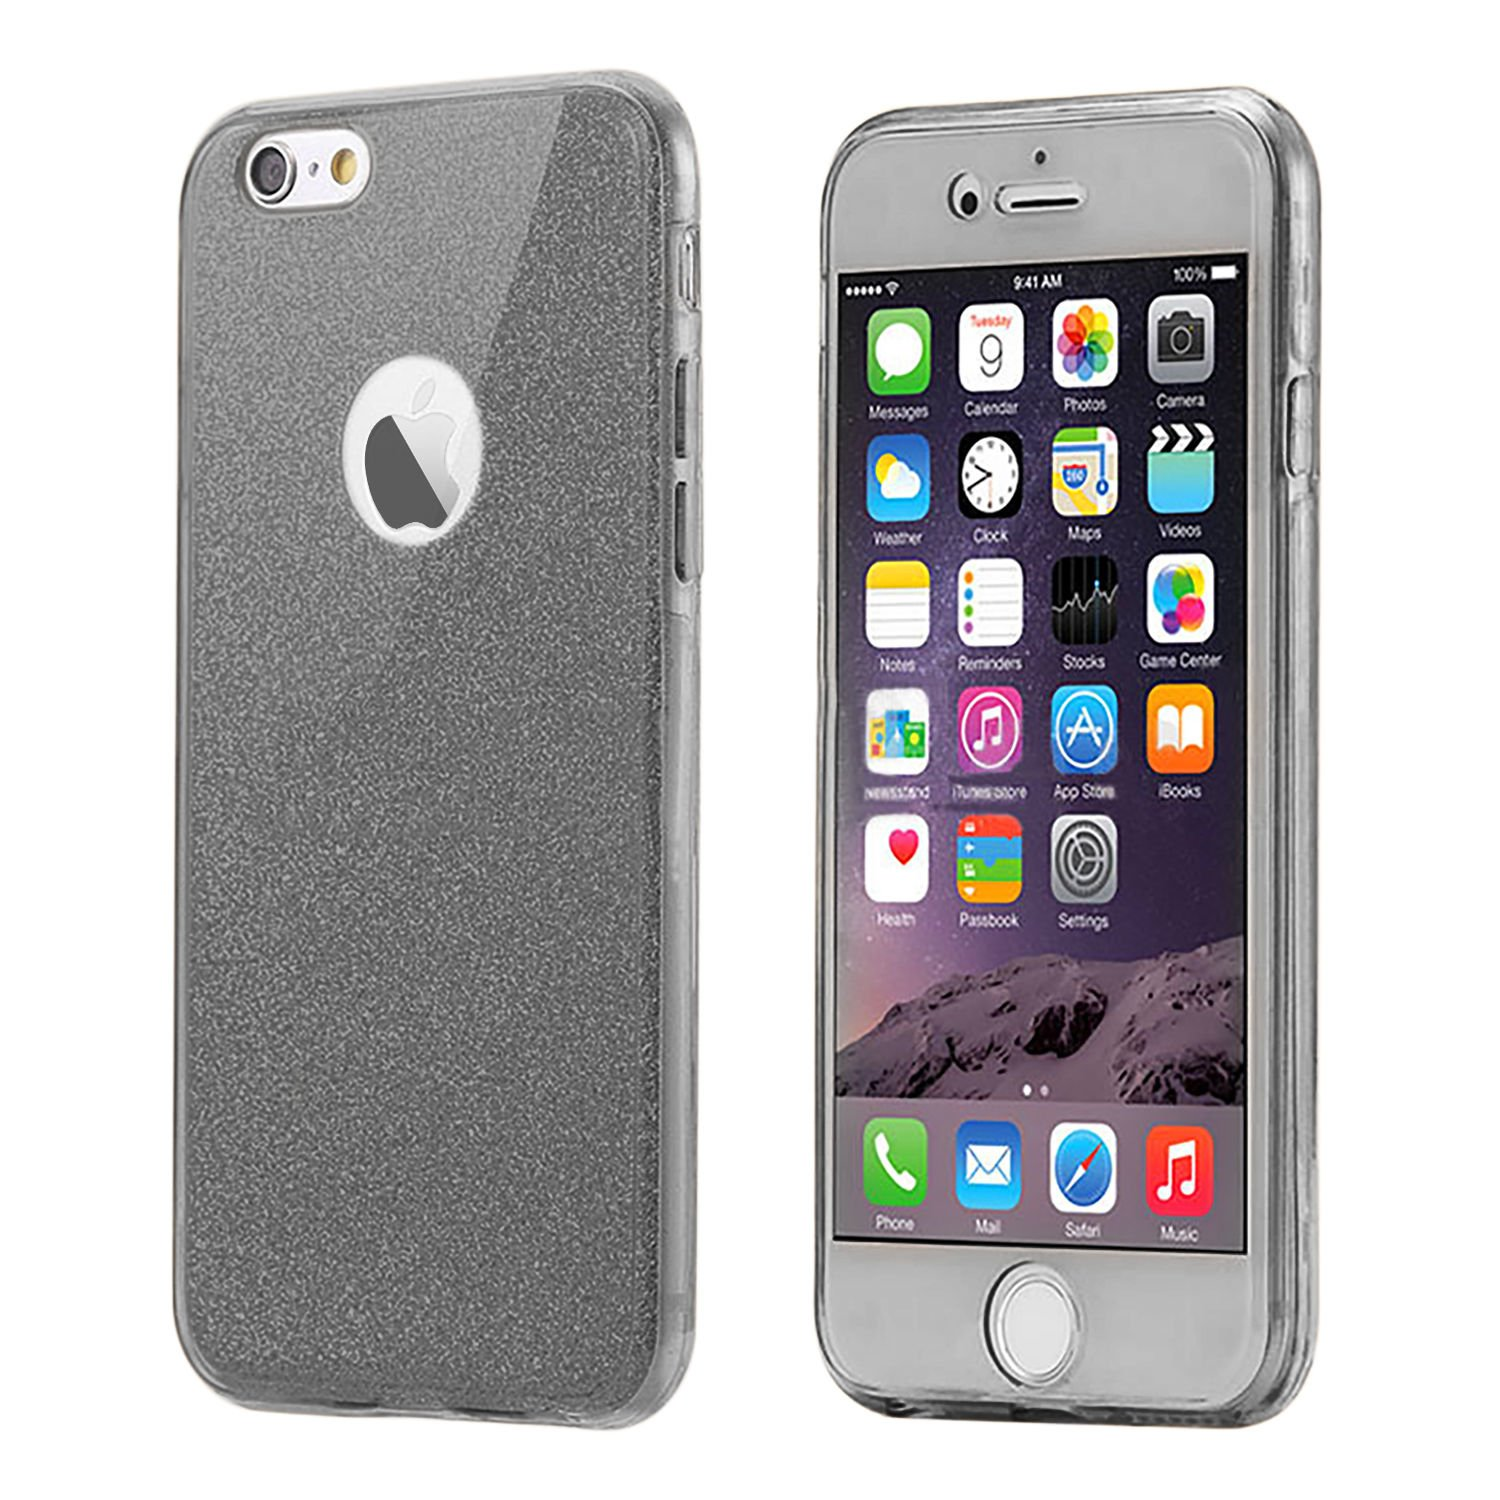 Connect Zone Cover Carbon Fiber Texture Design Back Cover Ultra Slim Anti-Scratch Shock Absorption Protective Soft TPU Silicone Bumper Case for iPhone 6|6s